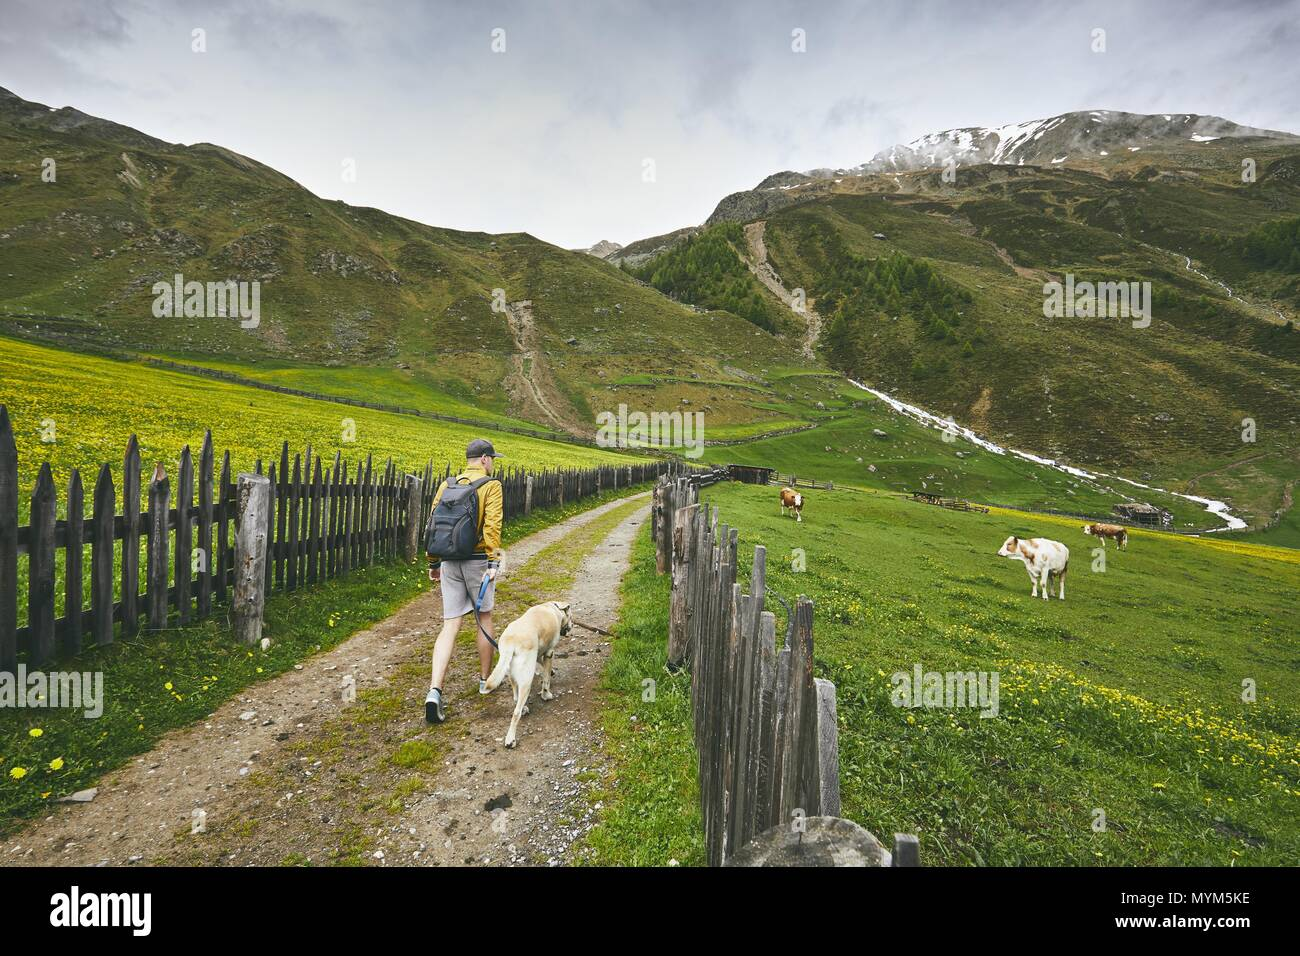 Tourist with dog in countryside. Young man walking with labrador retriever on dirt road. South Tyrol, Italy - Stock Image